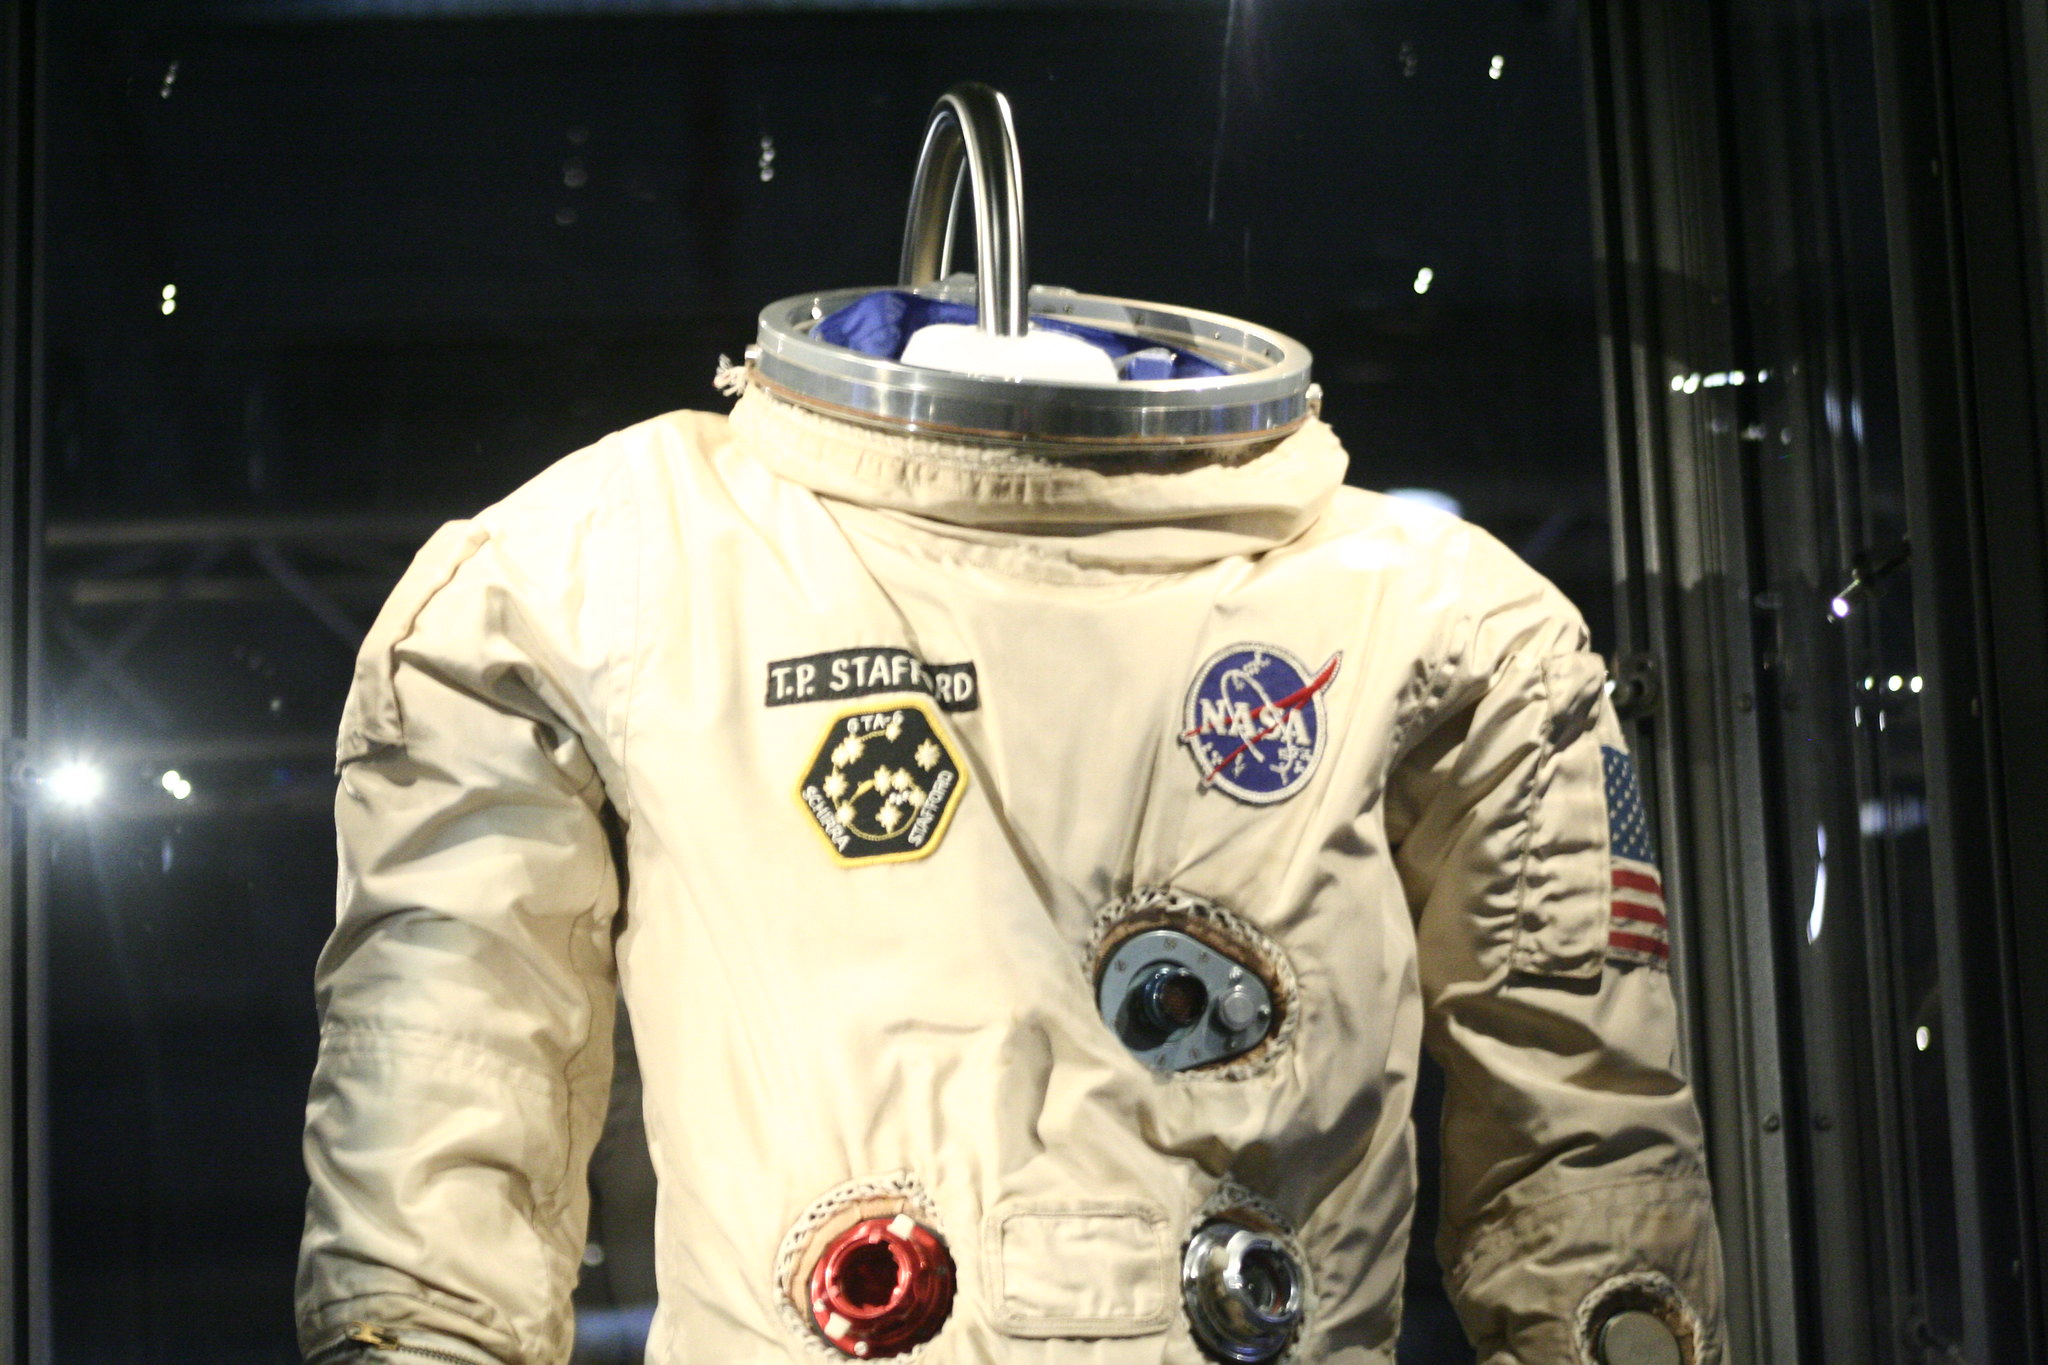 NASA Exhibition